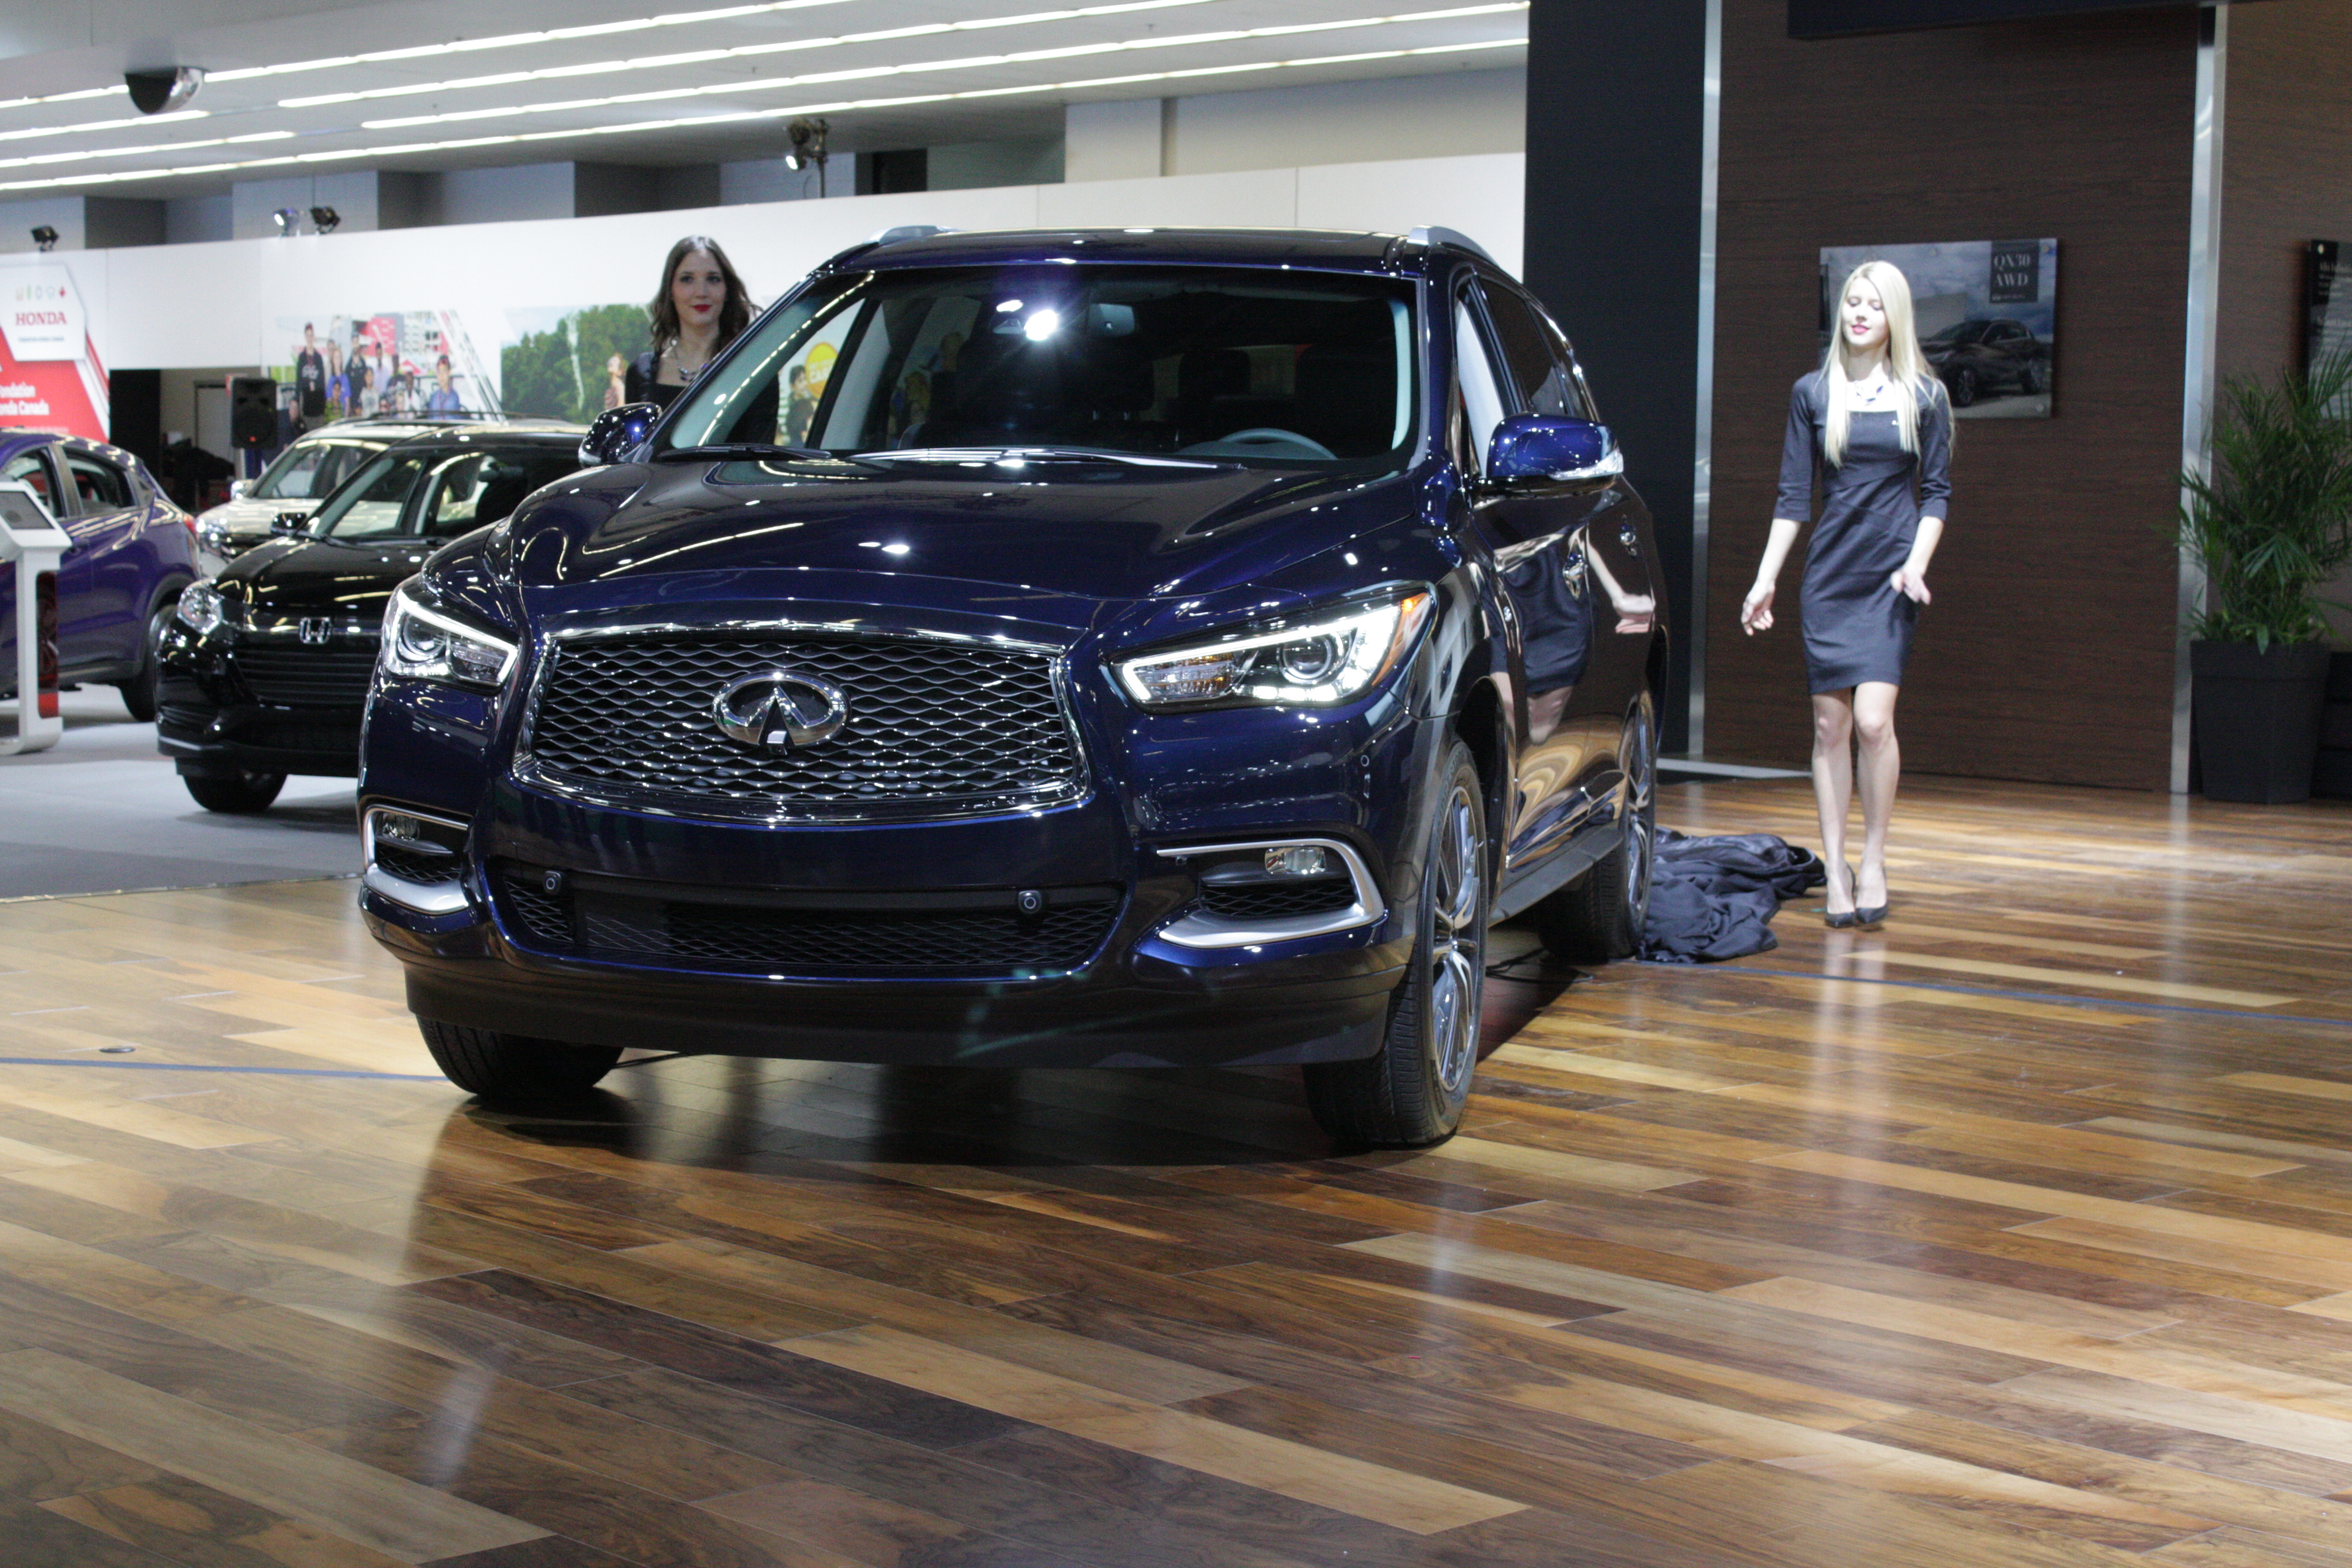 Also new from Infiniti for 2016 is a restyled version of the QX60 mid-size crossover.